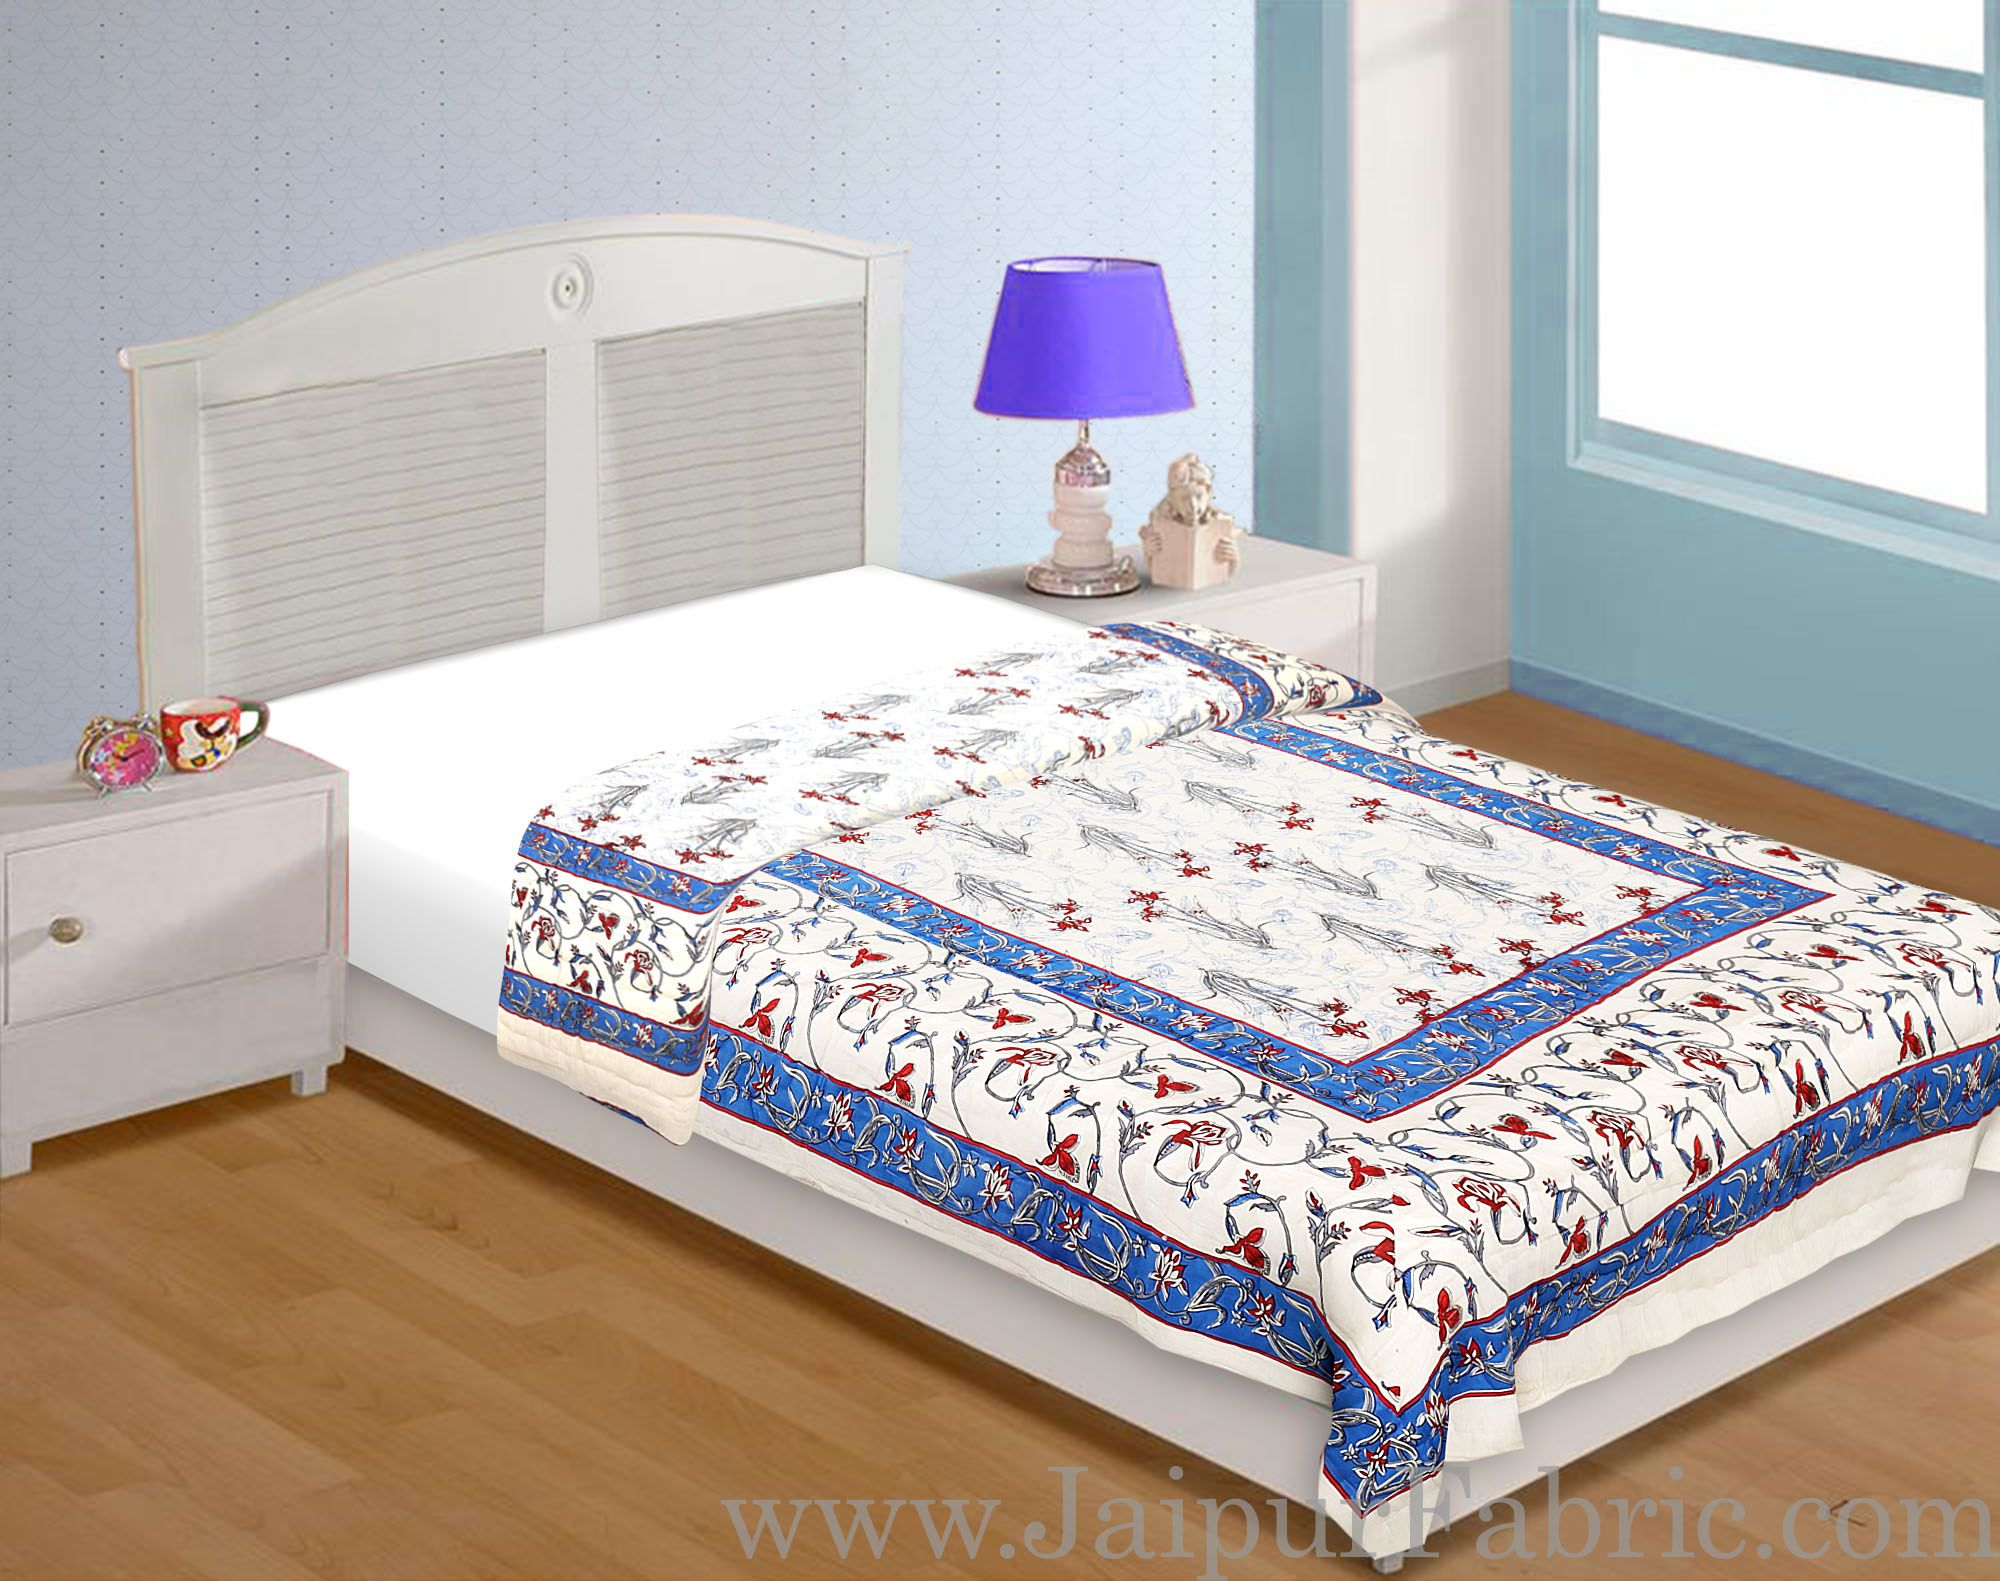 Cream Base Sky Blue  Border  Bud And Tree Both Side Printed  Cotton Single Quilt